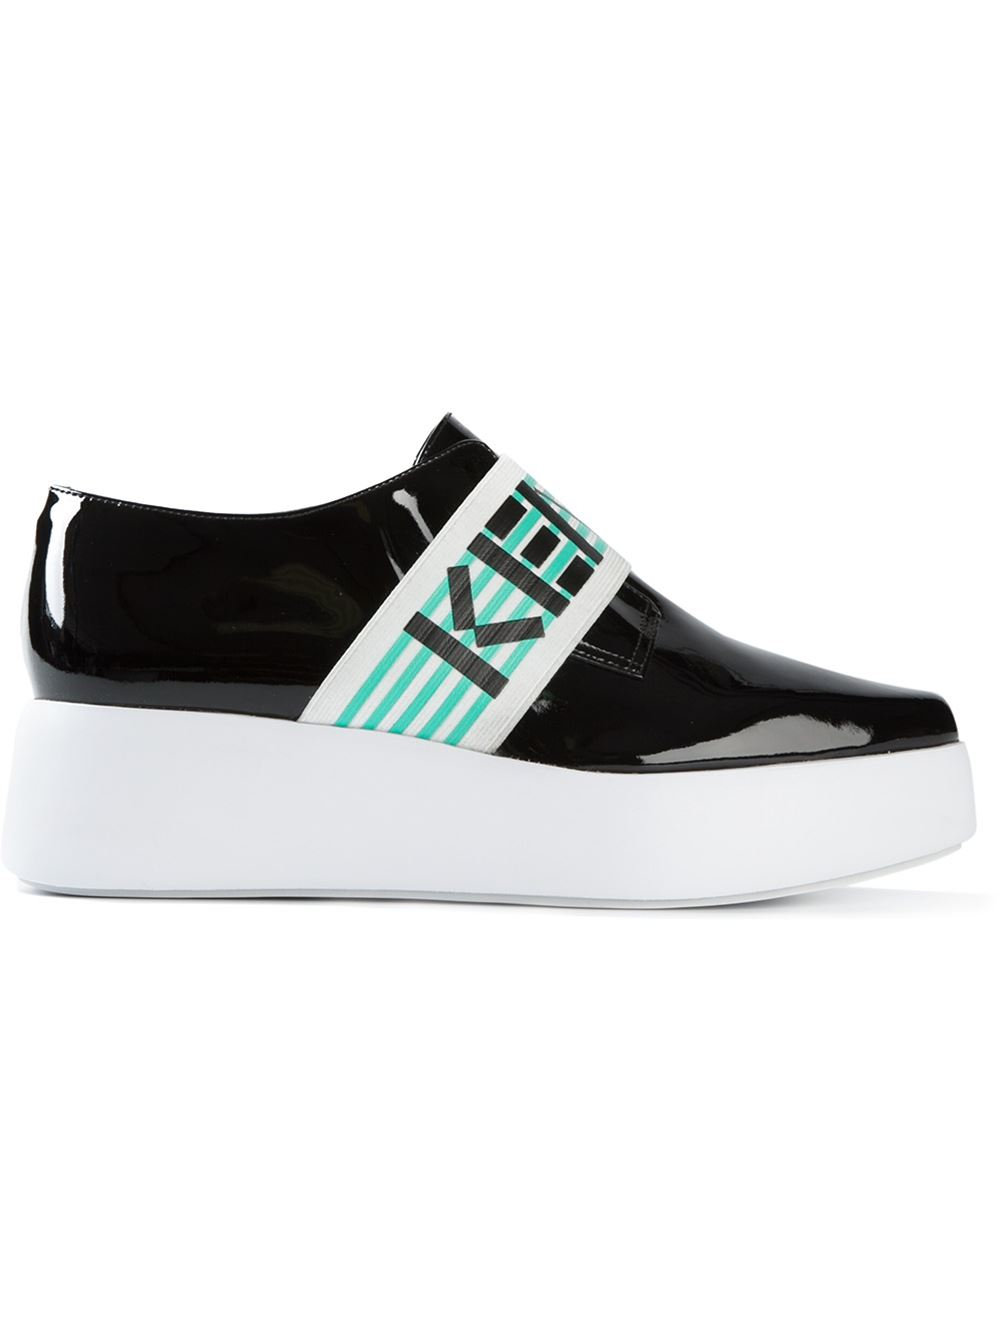 Awesome  Kenzo Cotton Espadrilles With Logo Black Shoes Women Shoes Women